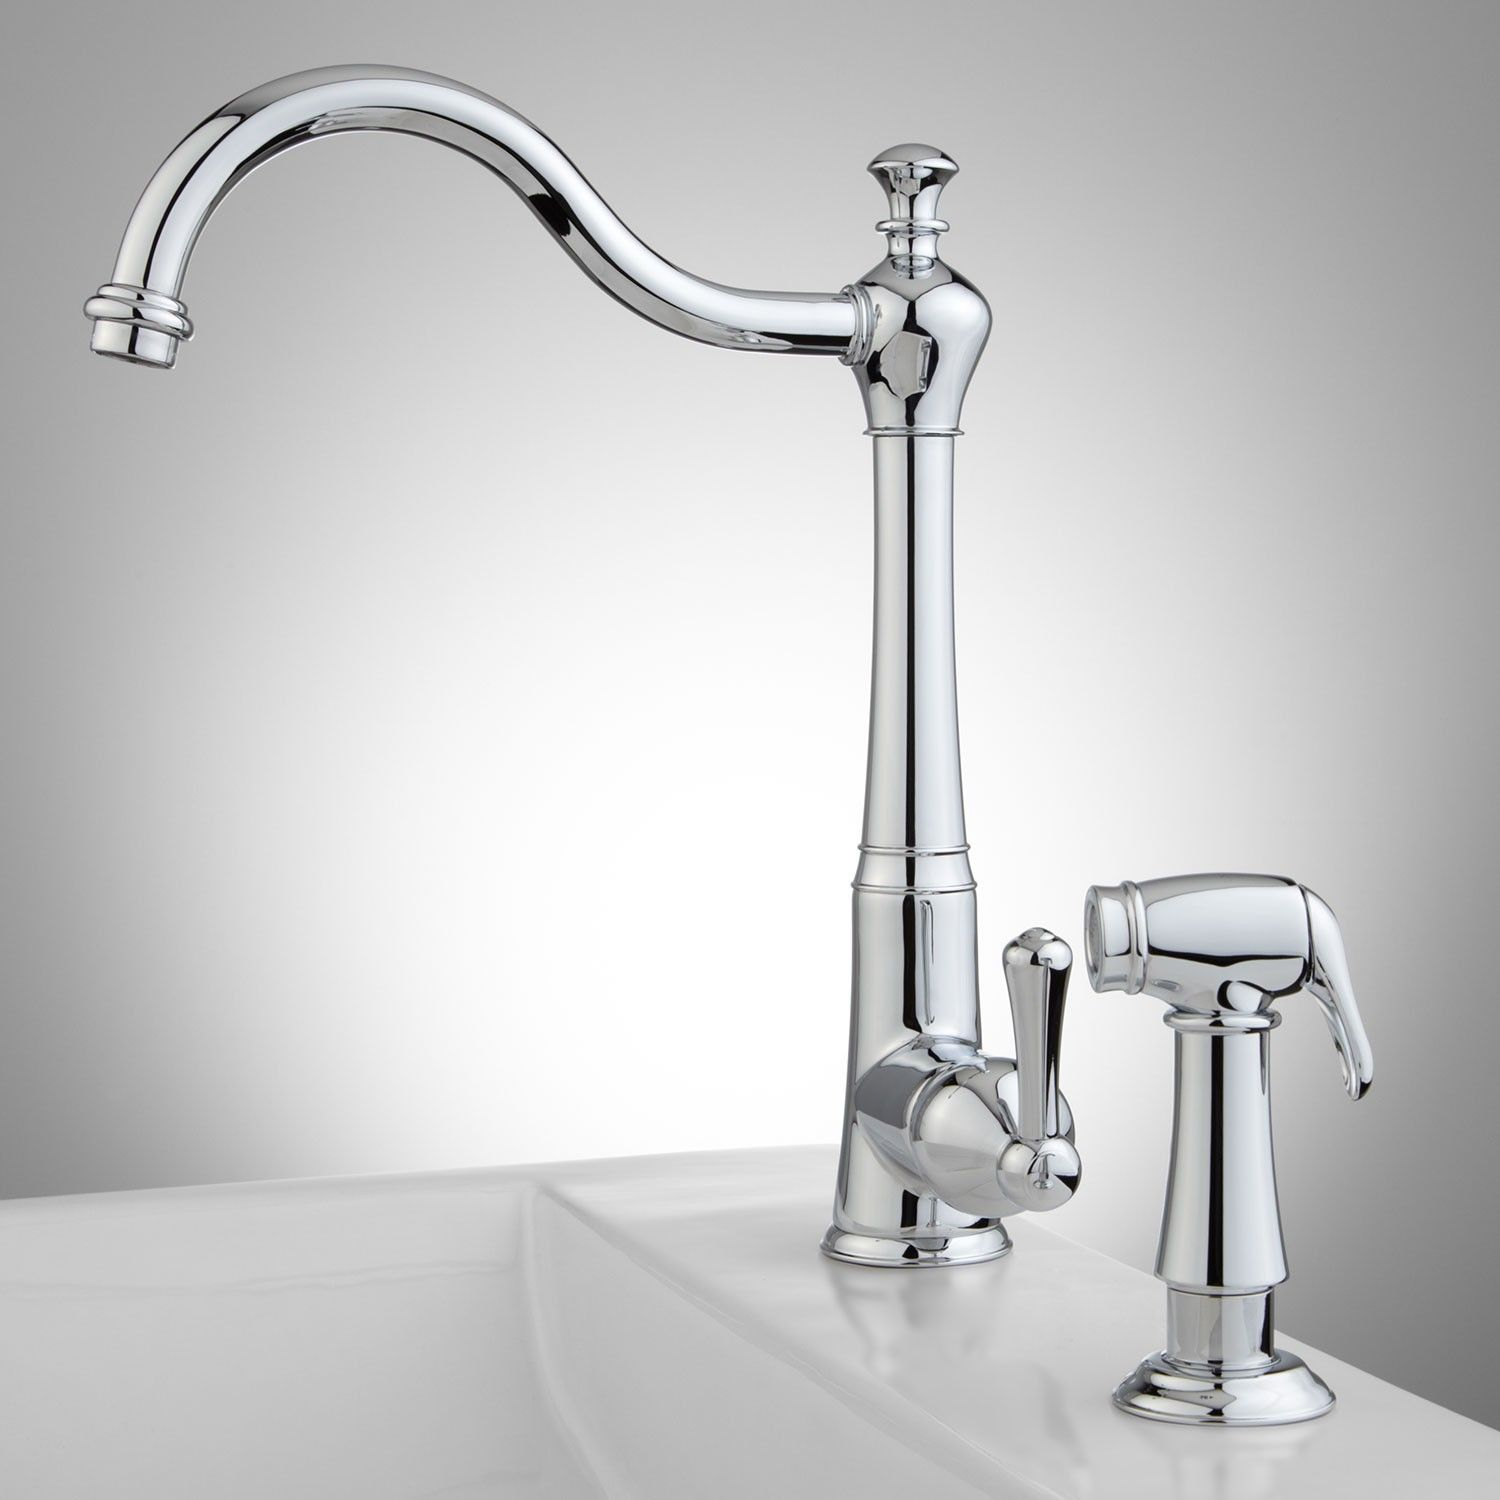 Kitchen Faucet With Handspray Cabinets Stores Sonoma Besto Blog